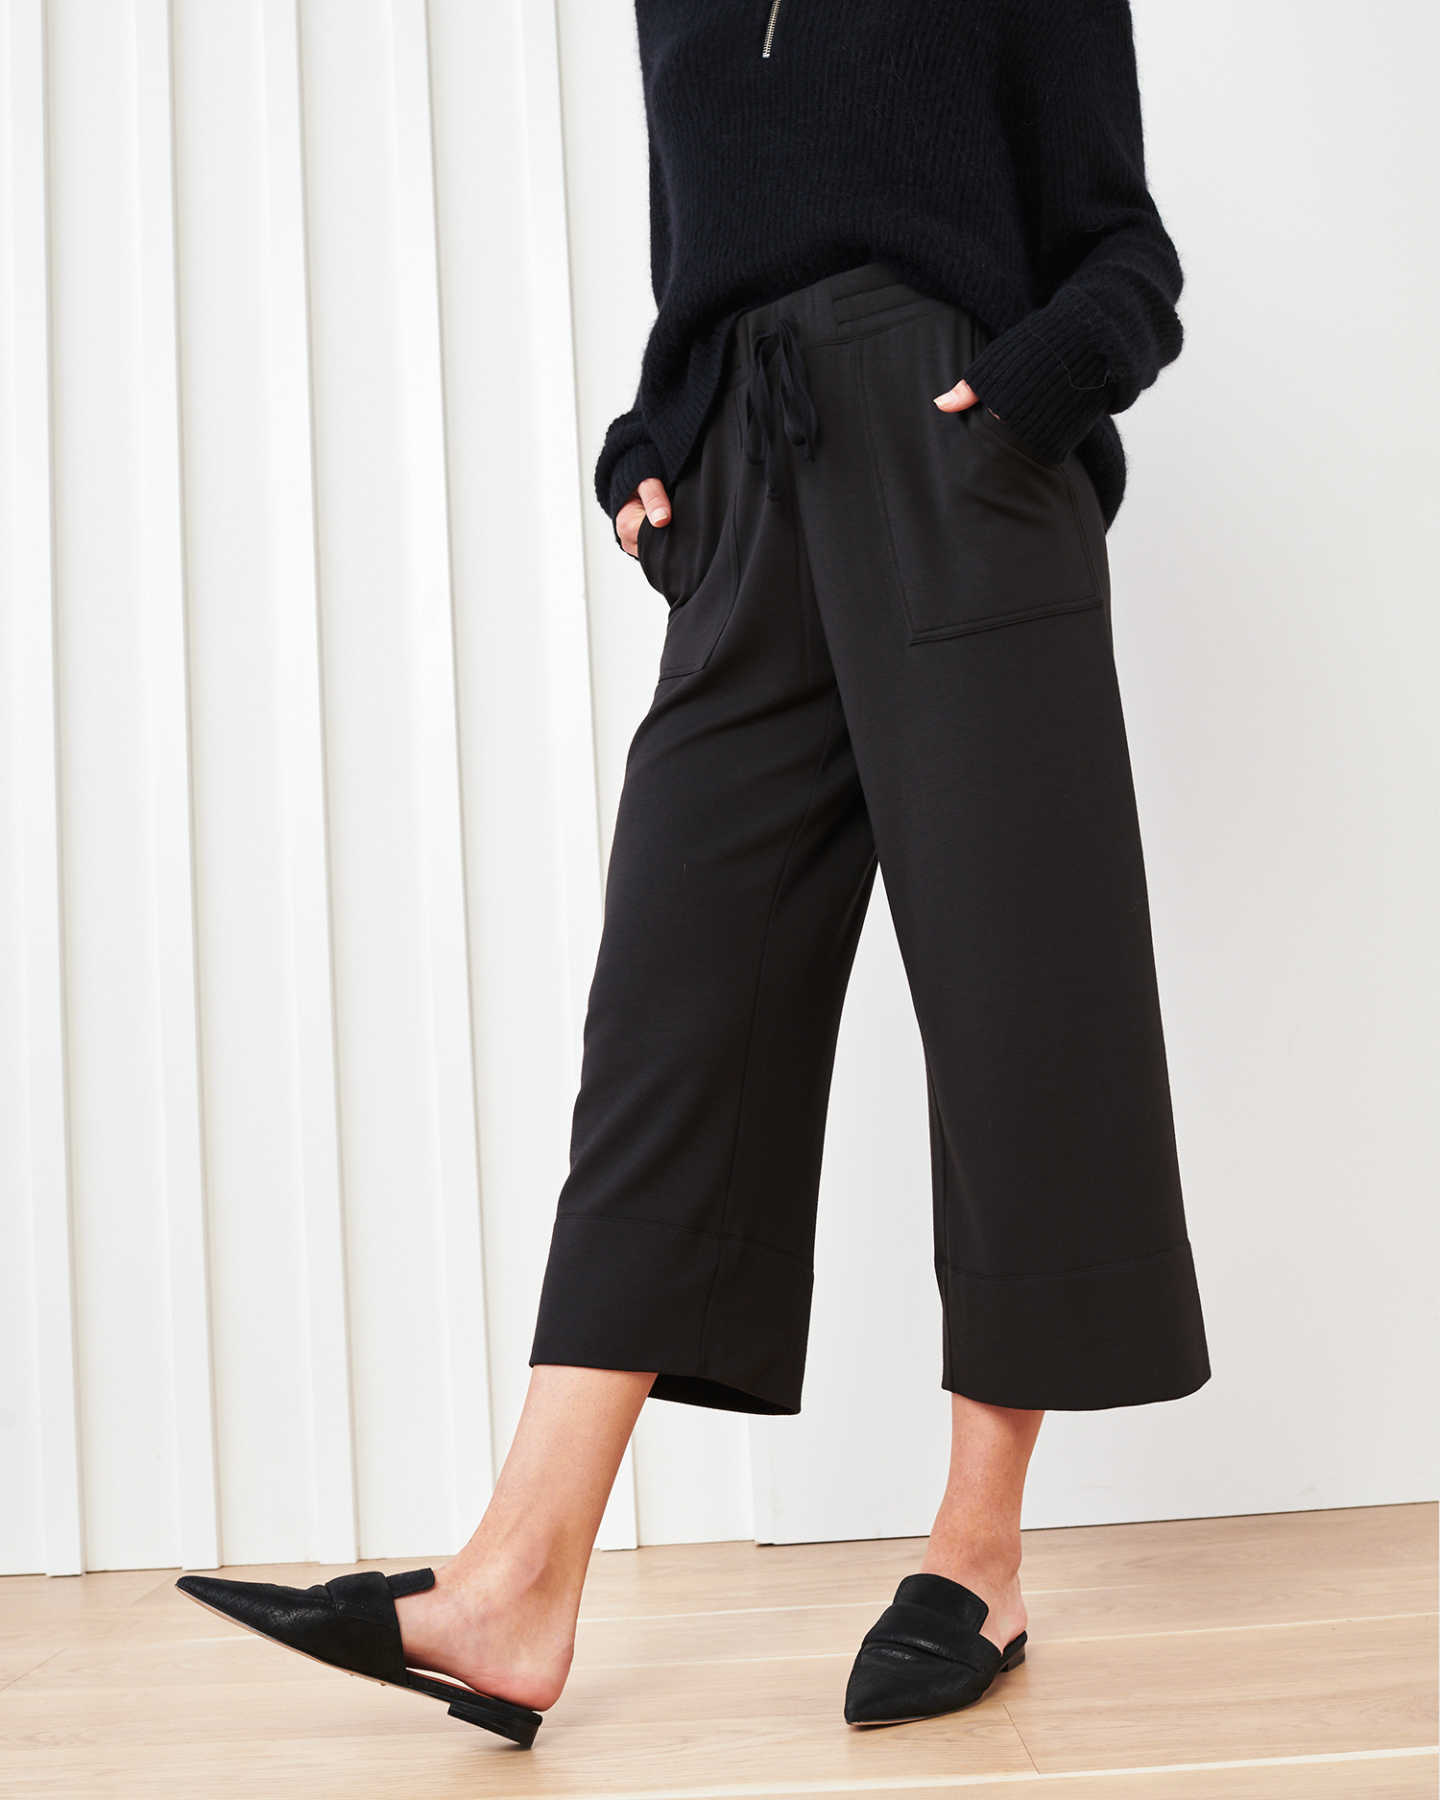 SuperSoft Fleece Wide Leg Pants - Black - 2